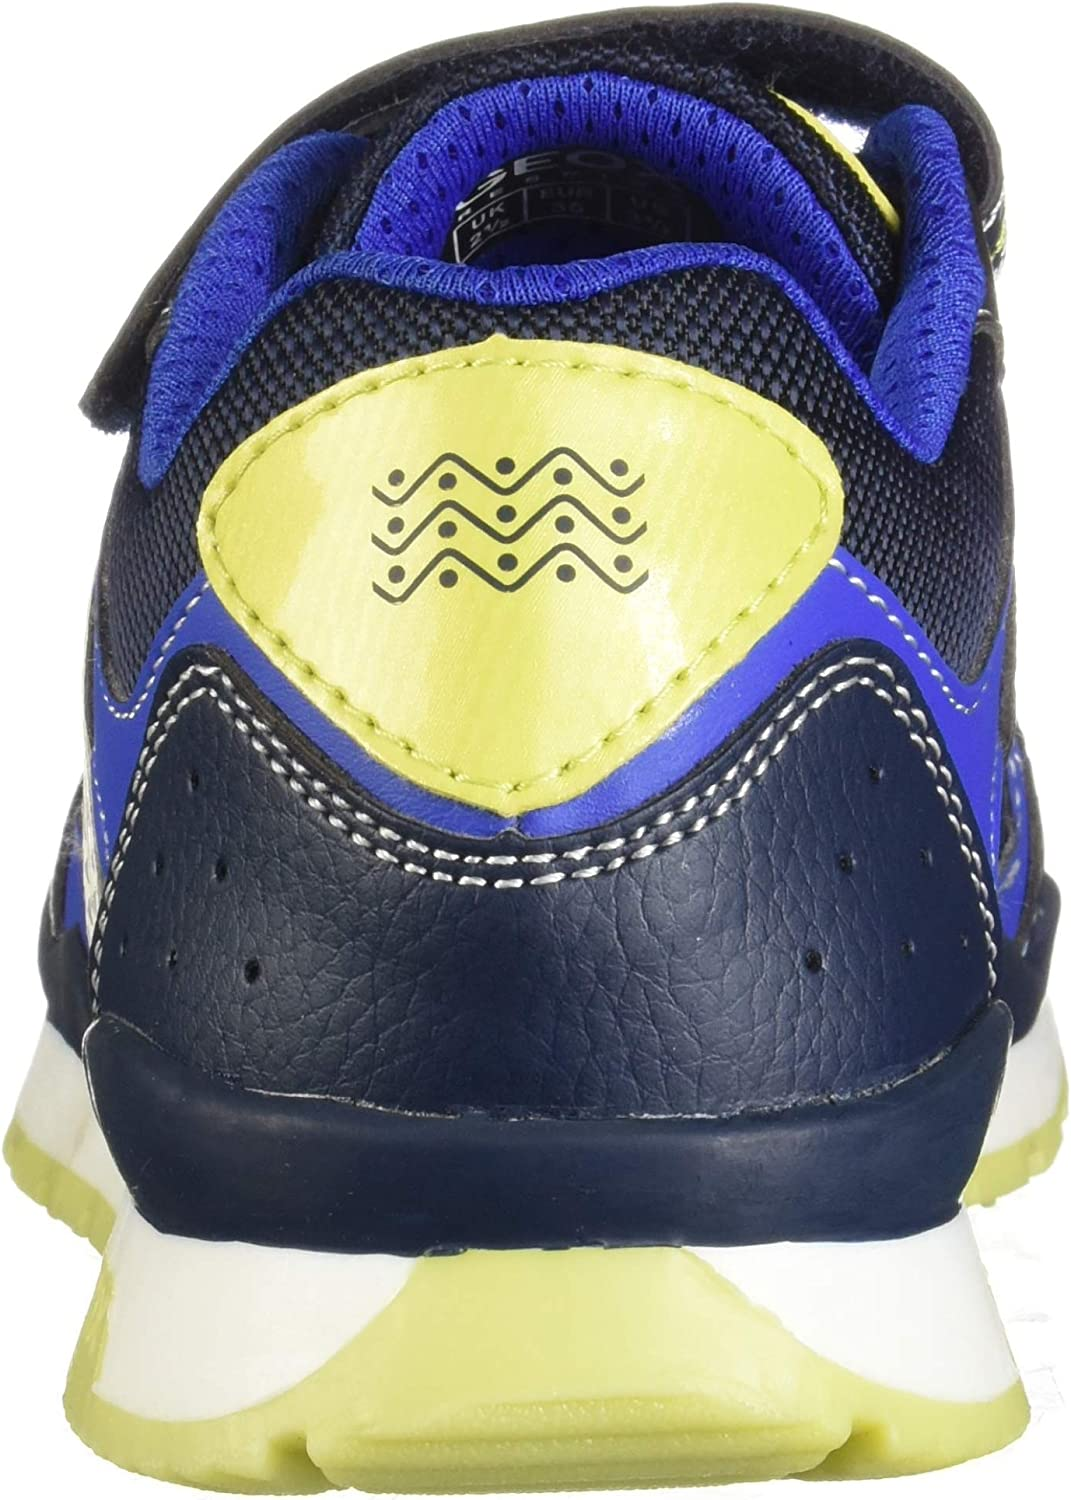 Geox Boys/' J Pavel a Low-Top Sneakers